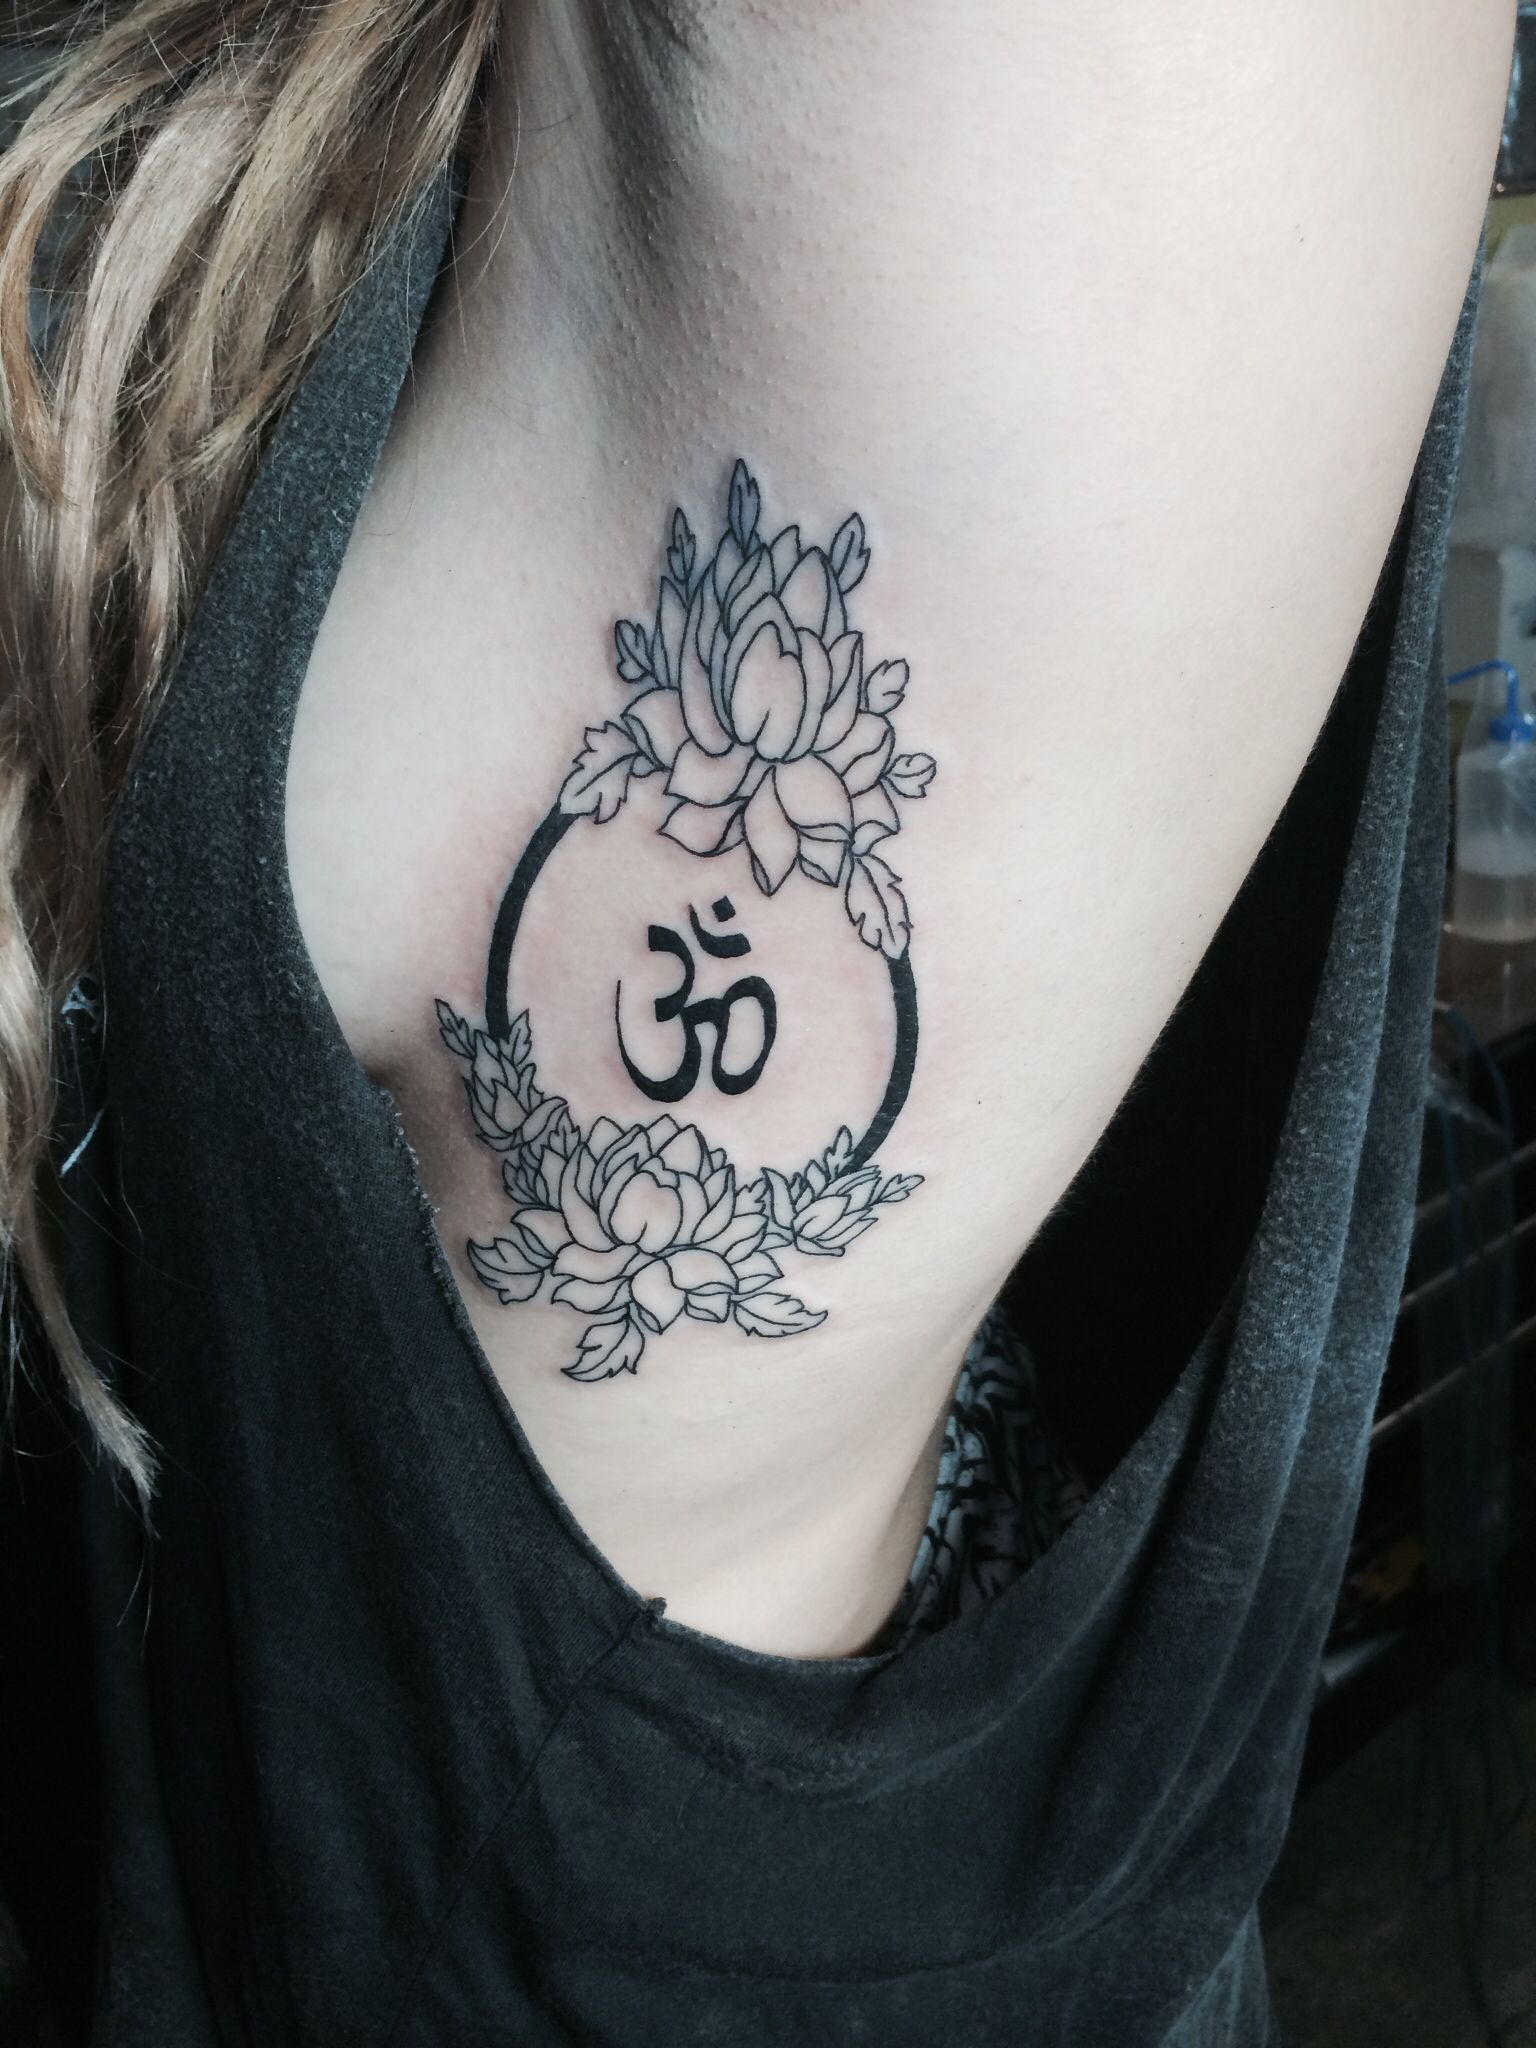 Lotus Flower Om Tattoo Things I Dig Pinterest Lotus Flower